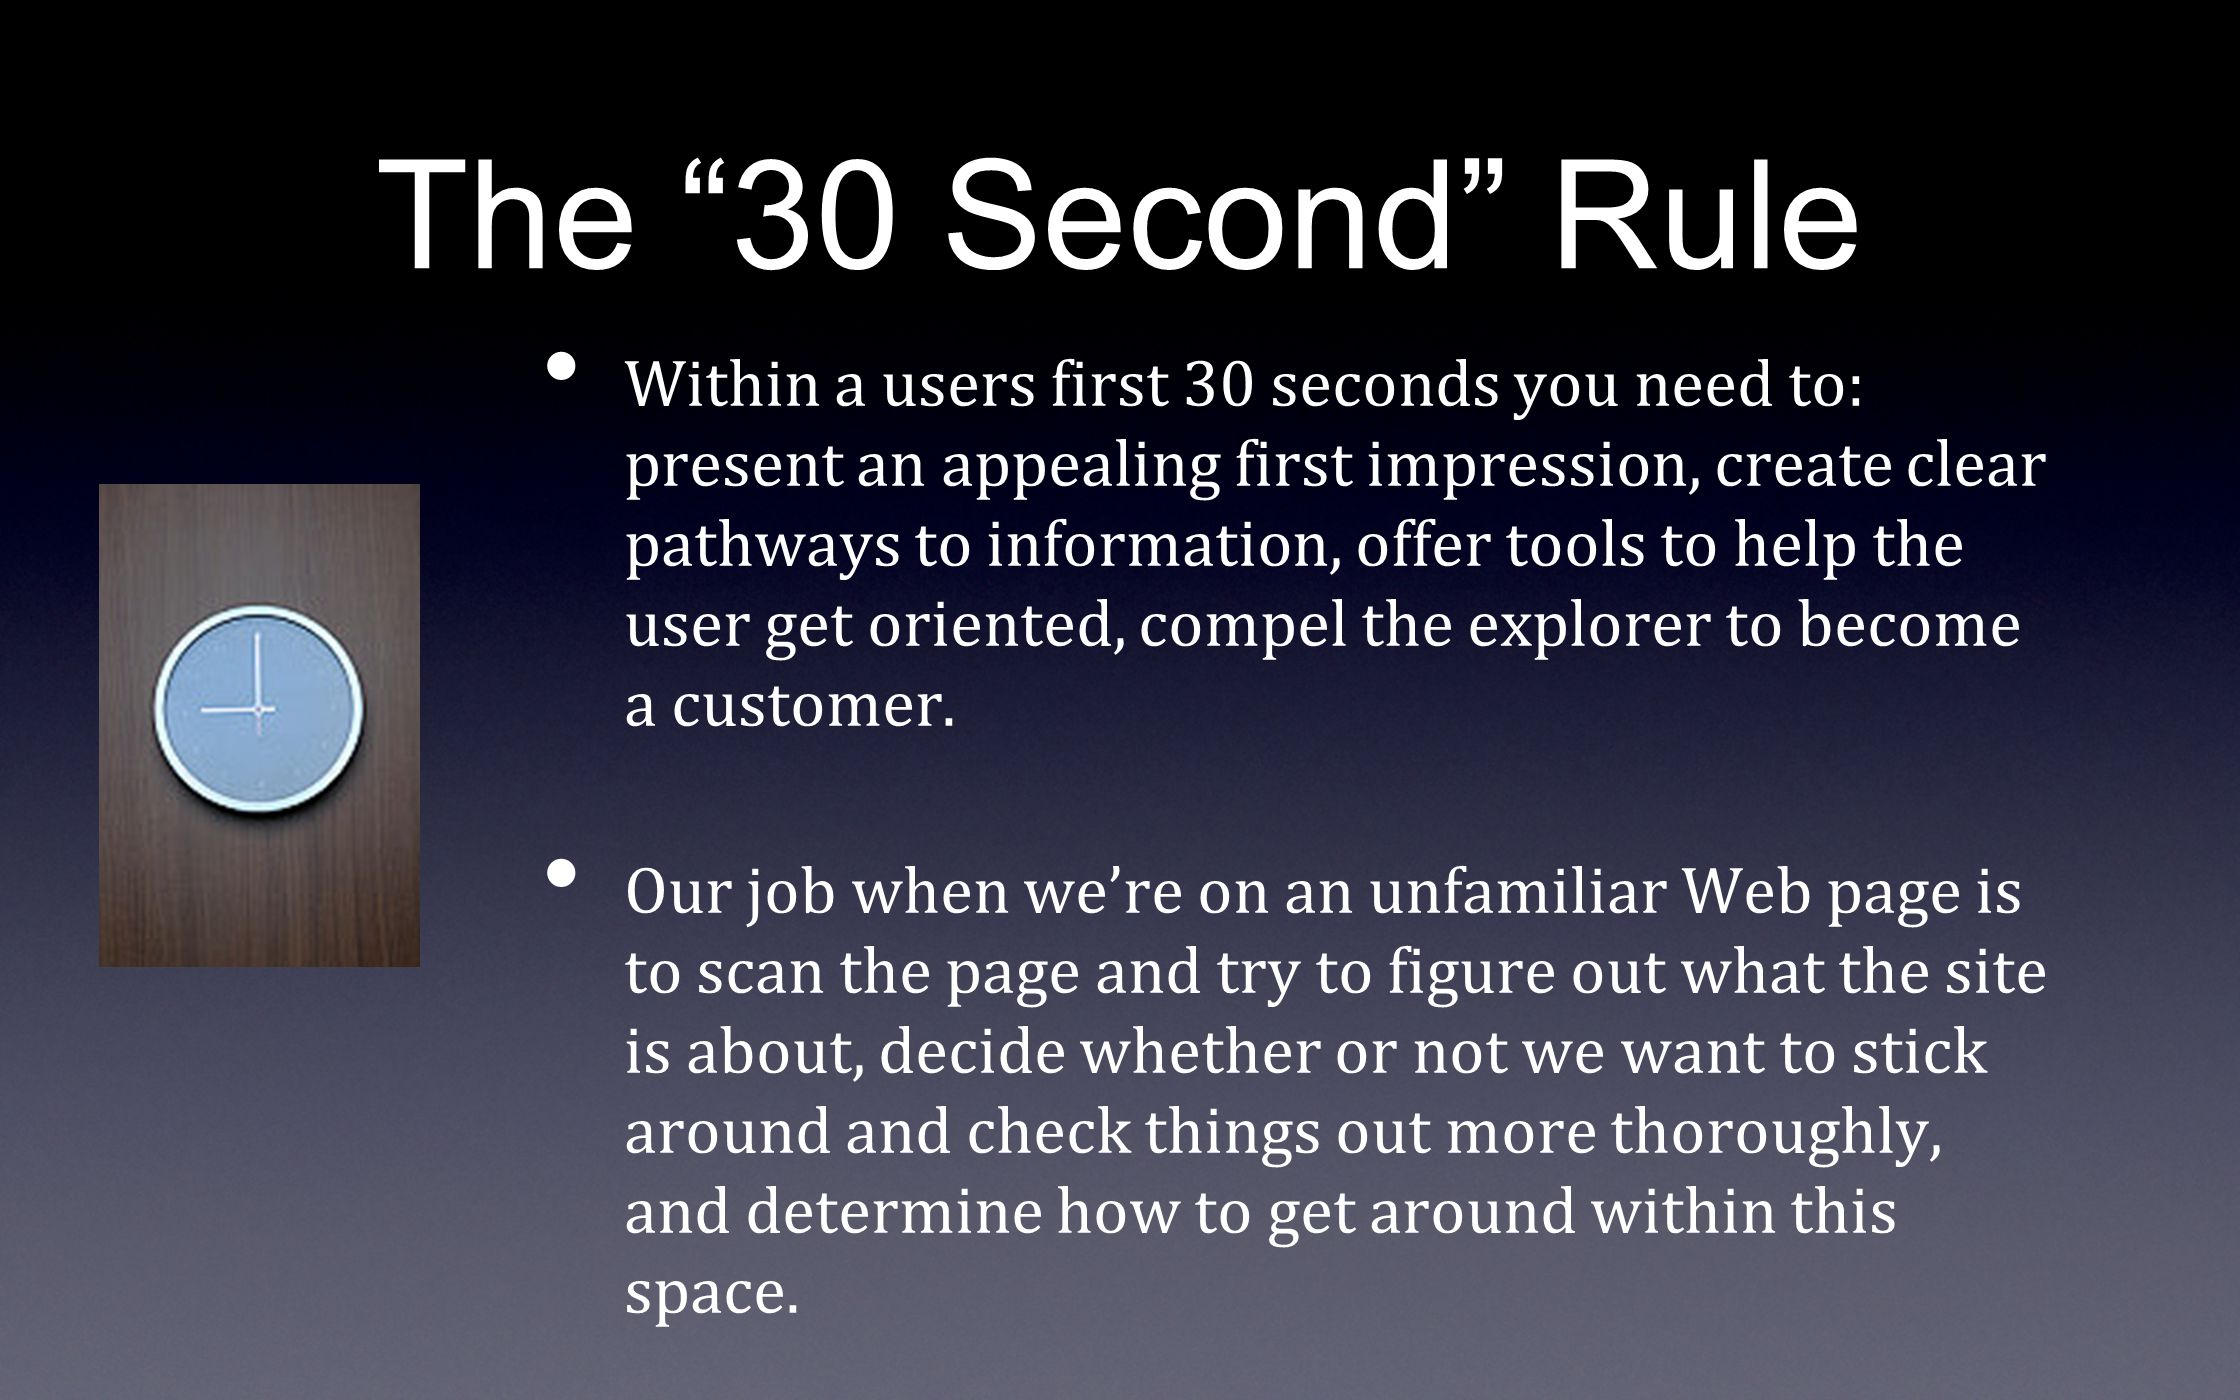 The 30 Second Rule